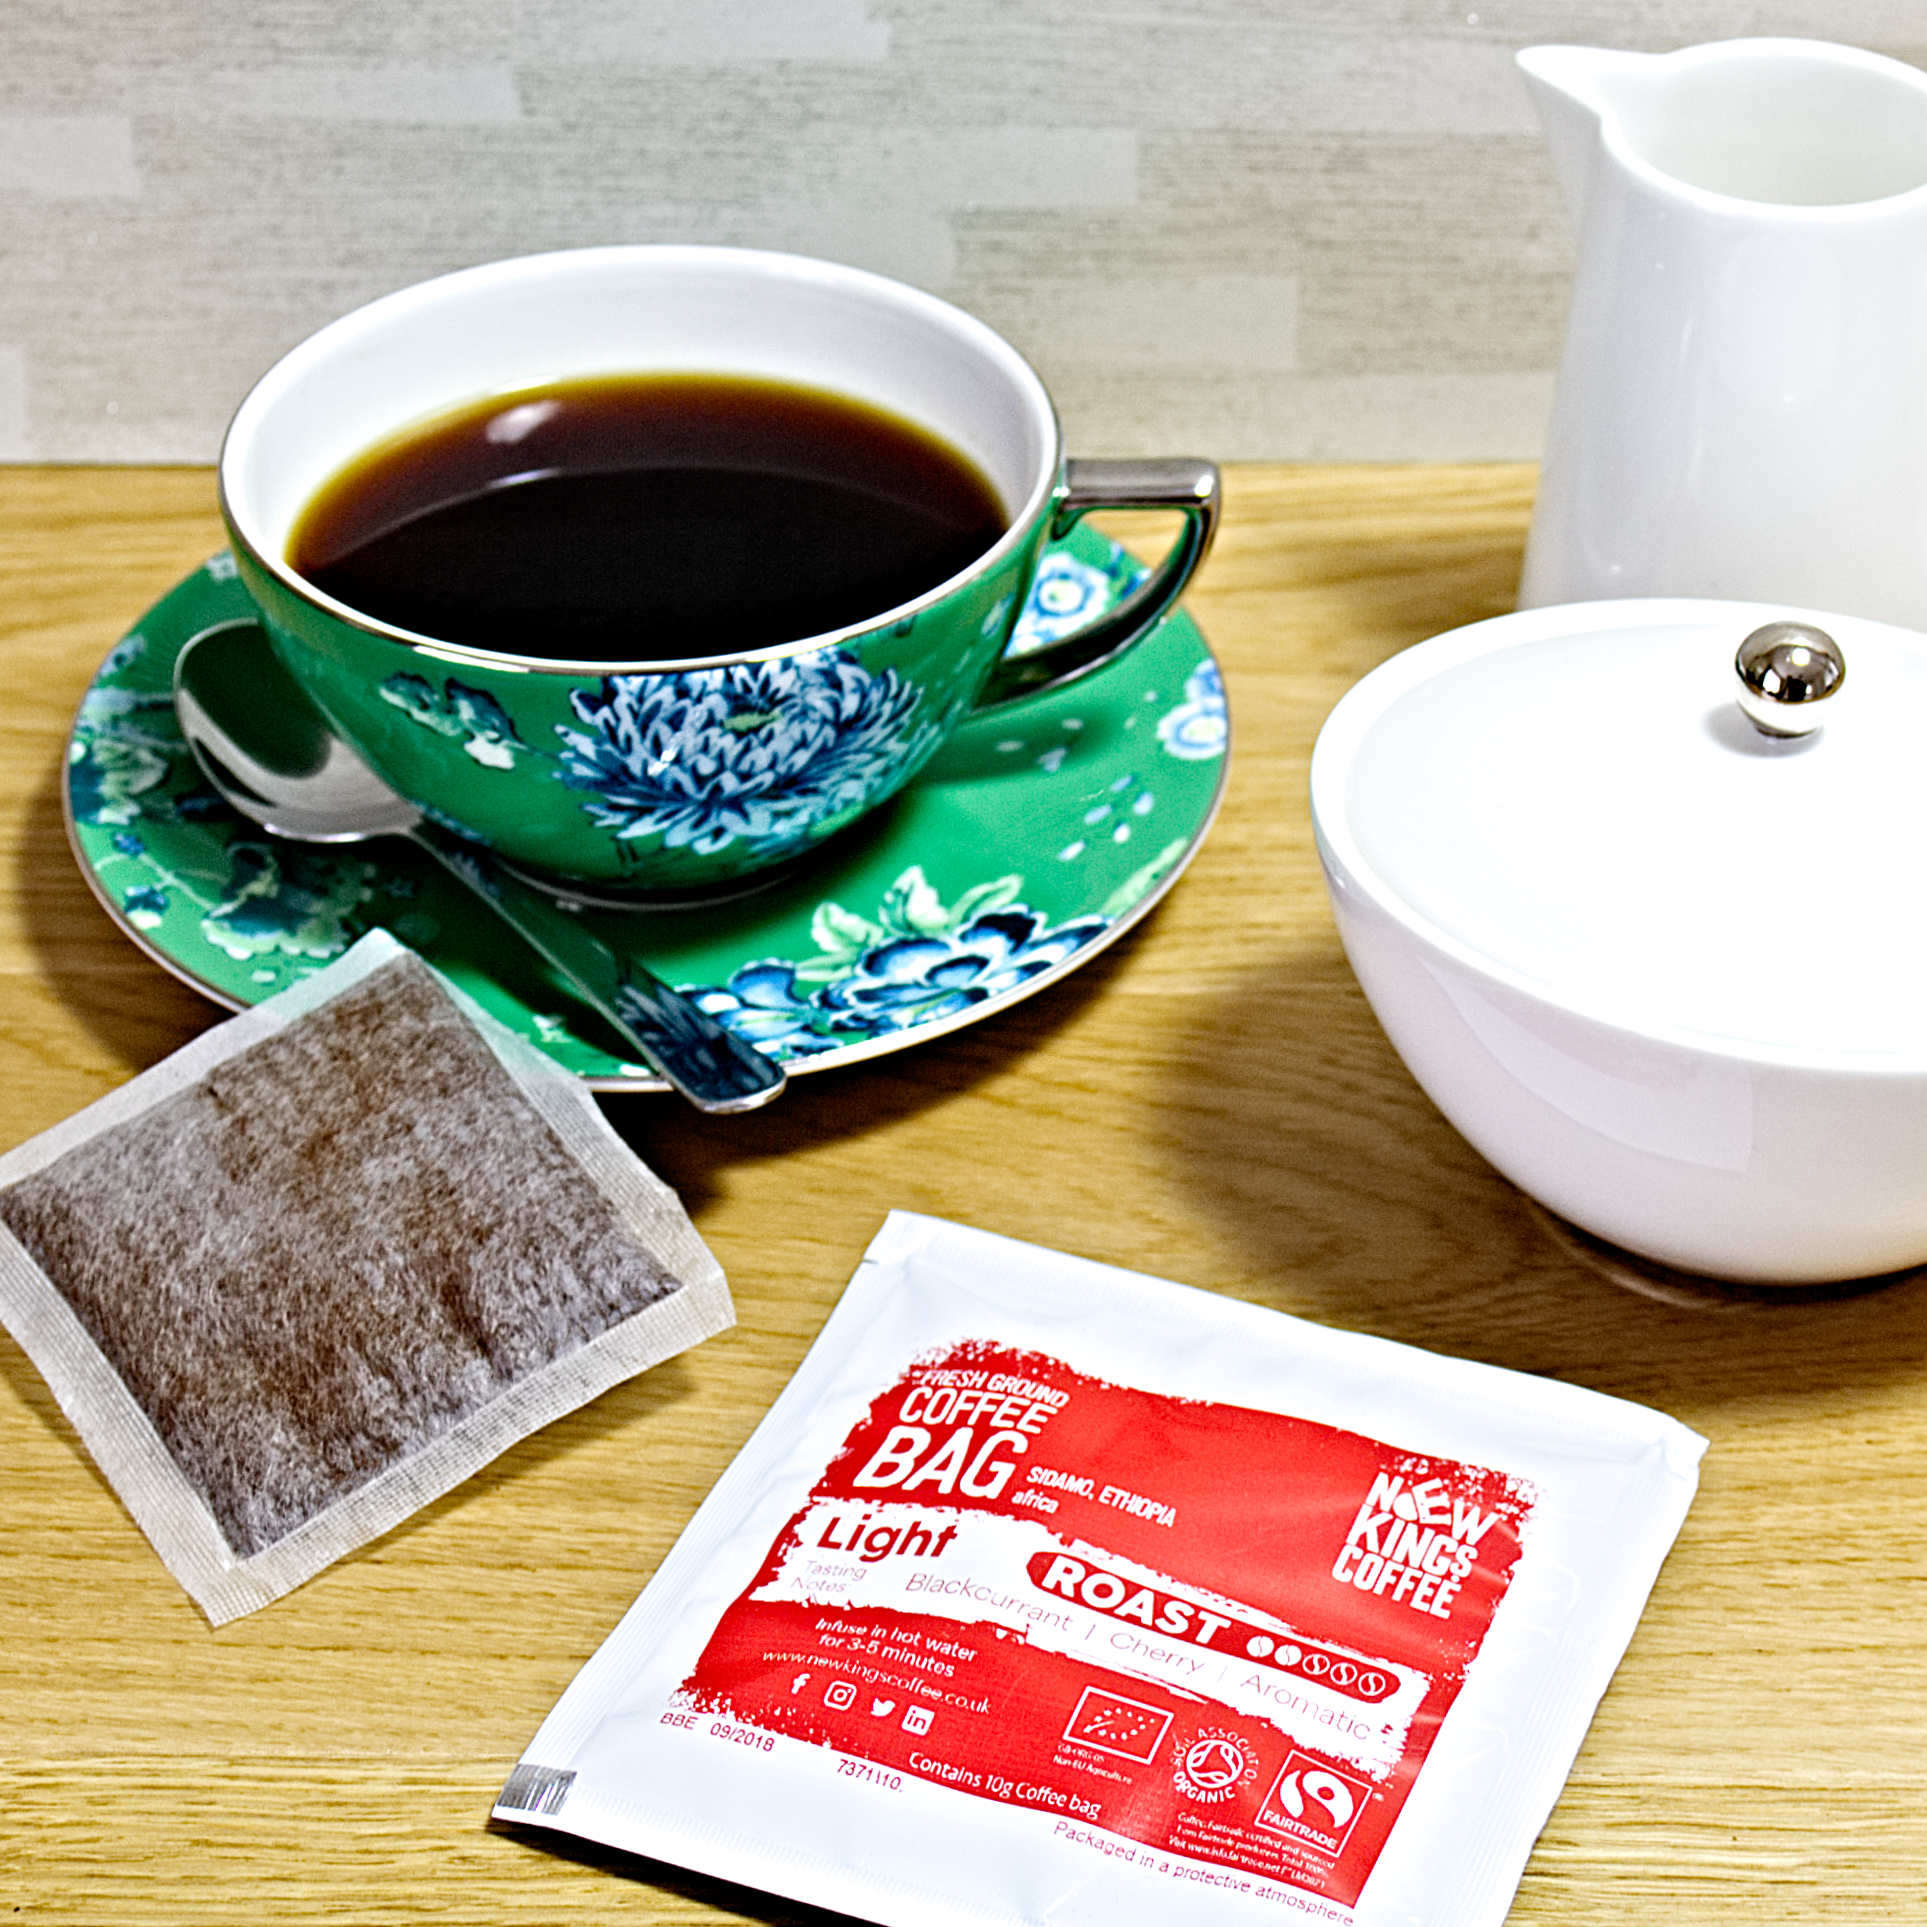 New-Kings-Coffee-Bags-Fairtrade-Organic-Ethiopia-with-milk-and-sugar-square.jpg